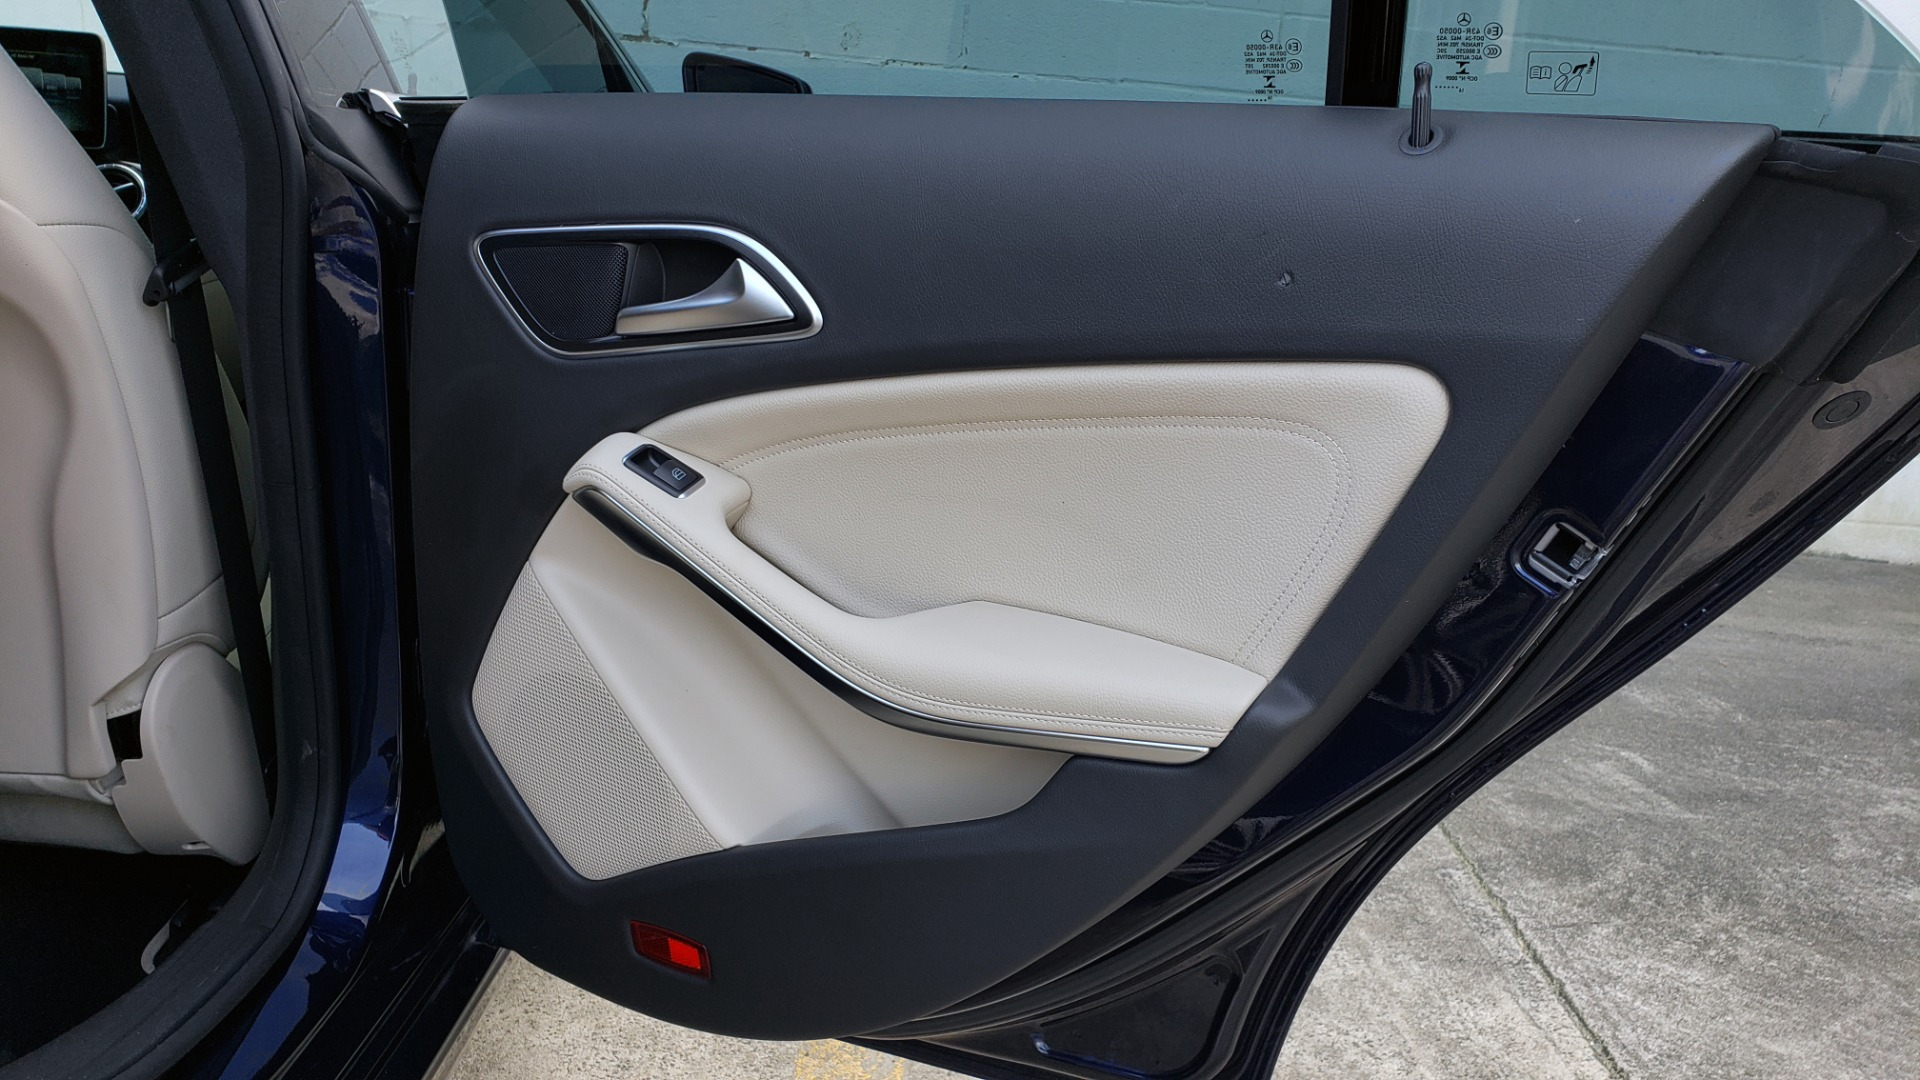 Used 2017 Mercedes-Benz CLA 250 PREMIUM / PANO-ROOF / HK SOUNDS / BSM / REARVIEW for sale Sold at Formula Imports in Charlotte NC 28227 64